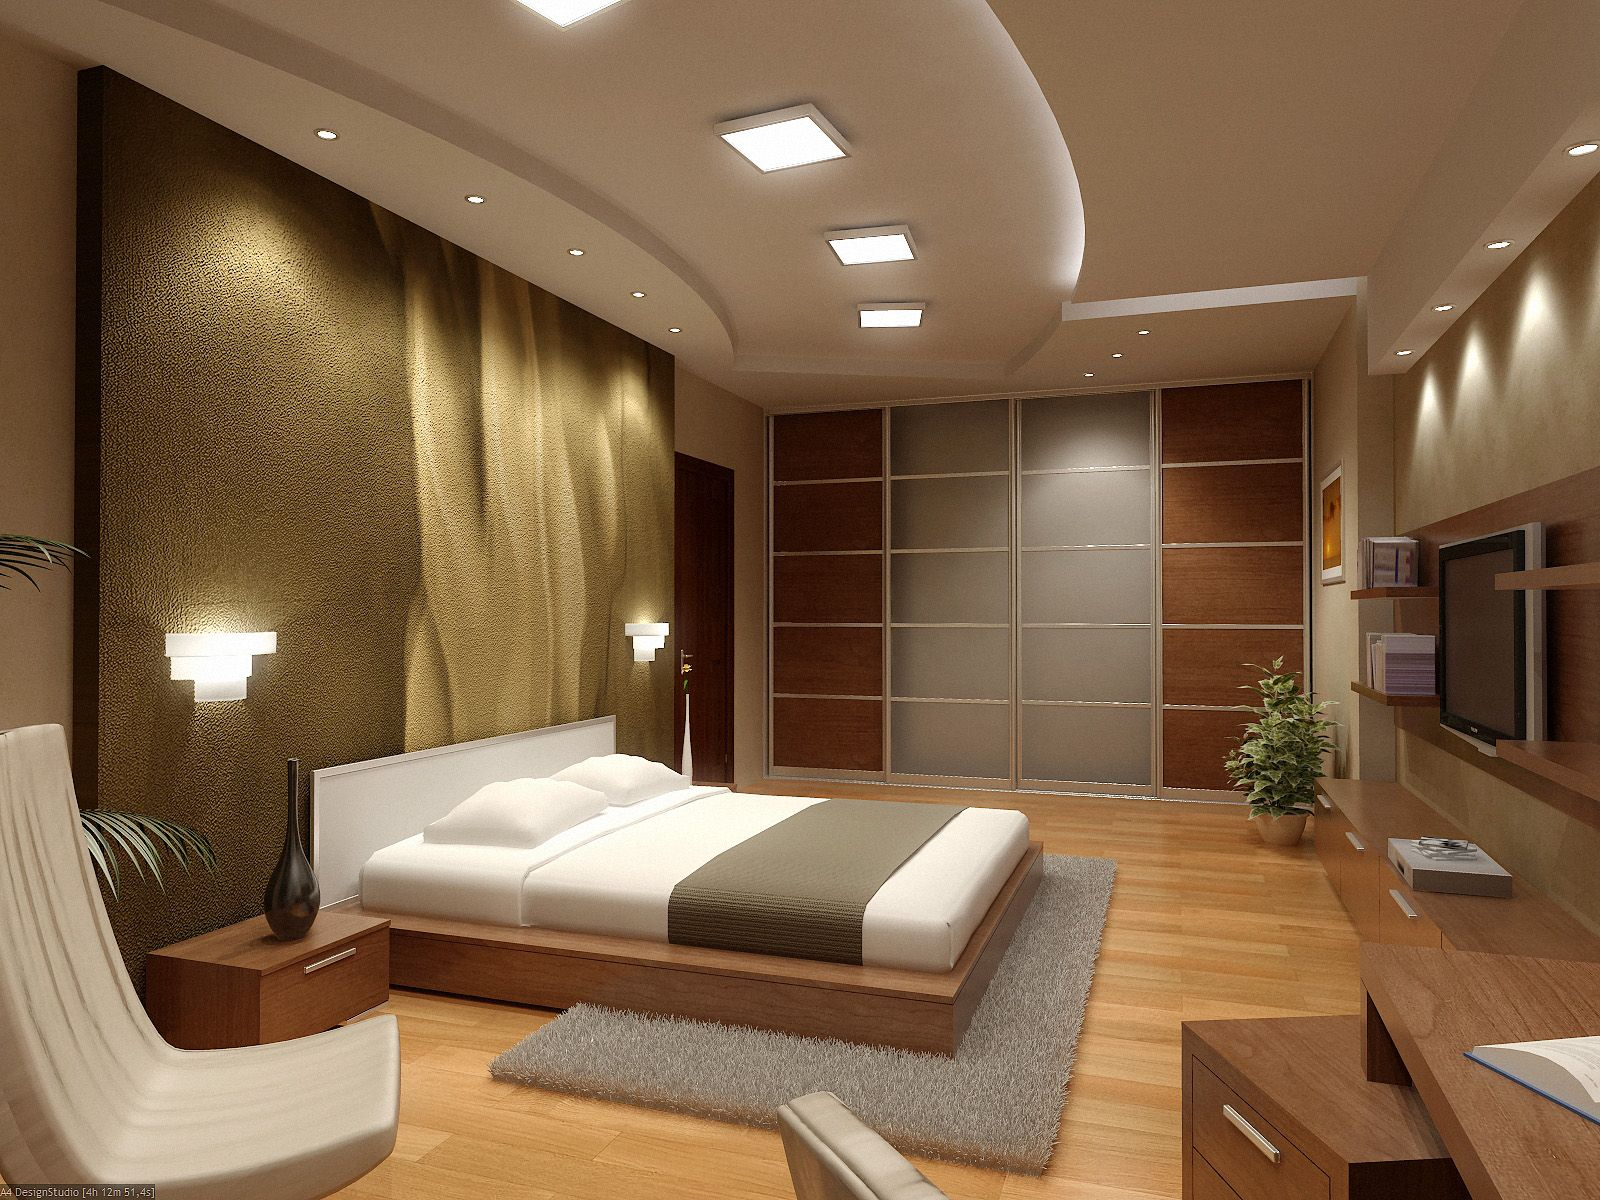 New home designs latest modern homes luxury interior for Modern interior designs for bedrooms